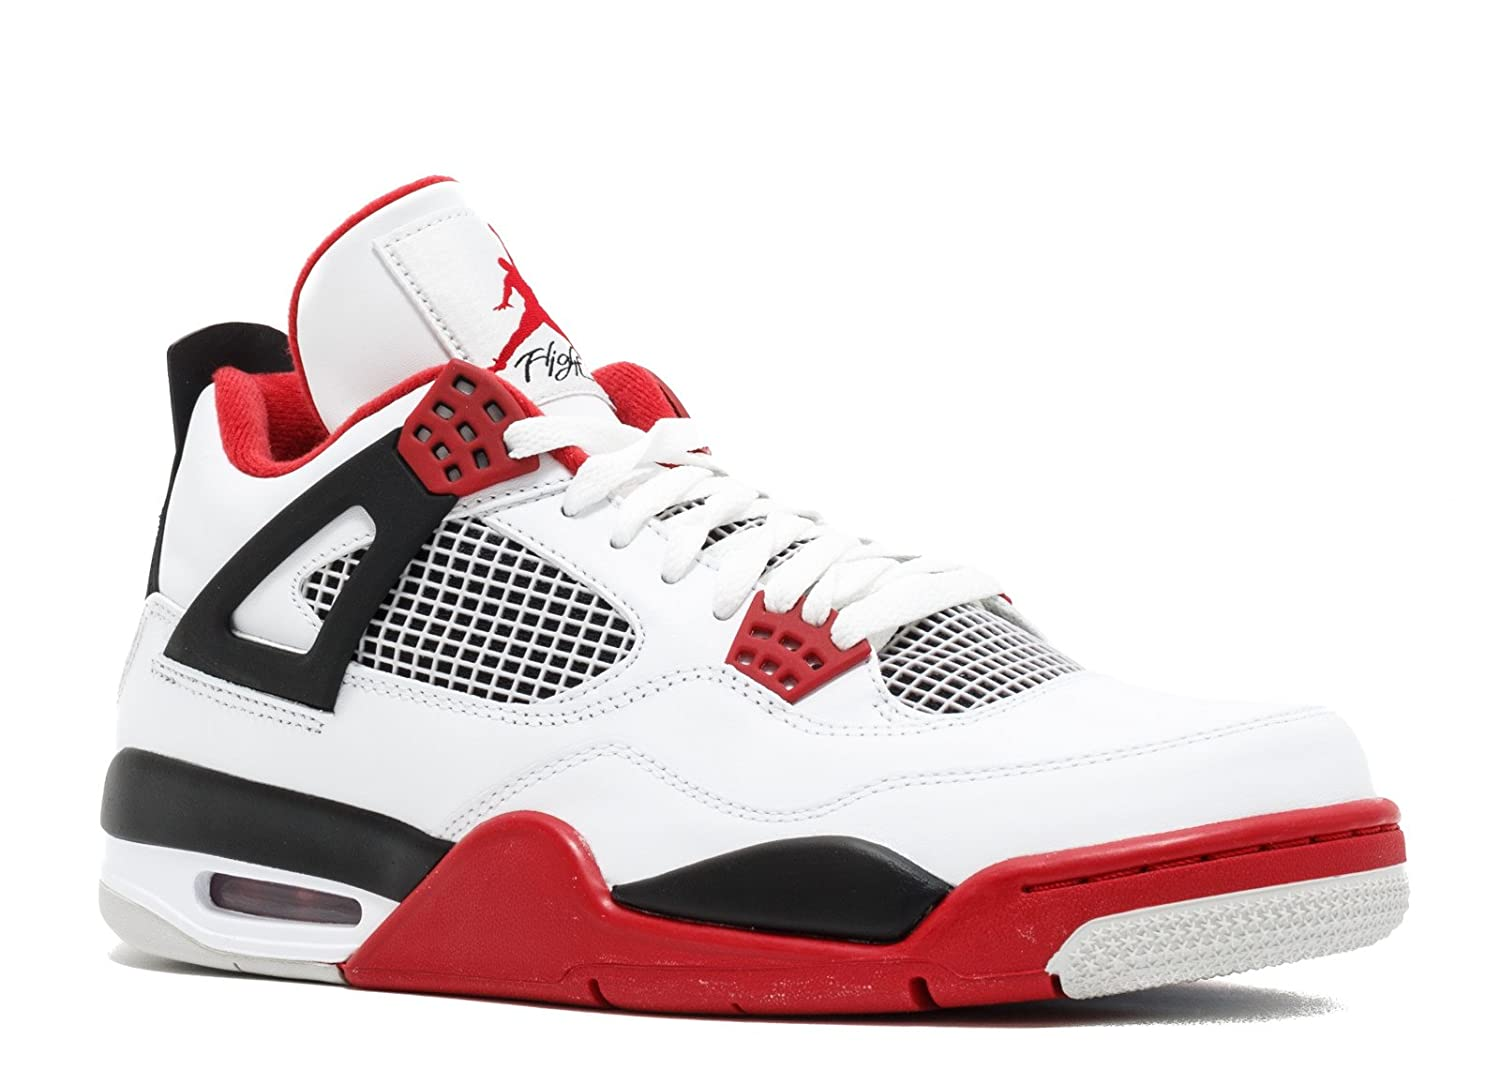 6e716b3a03607 Air Jordan 4 Retro Fire Red '2012 Release'- 308497-110 - Size 18